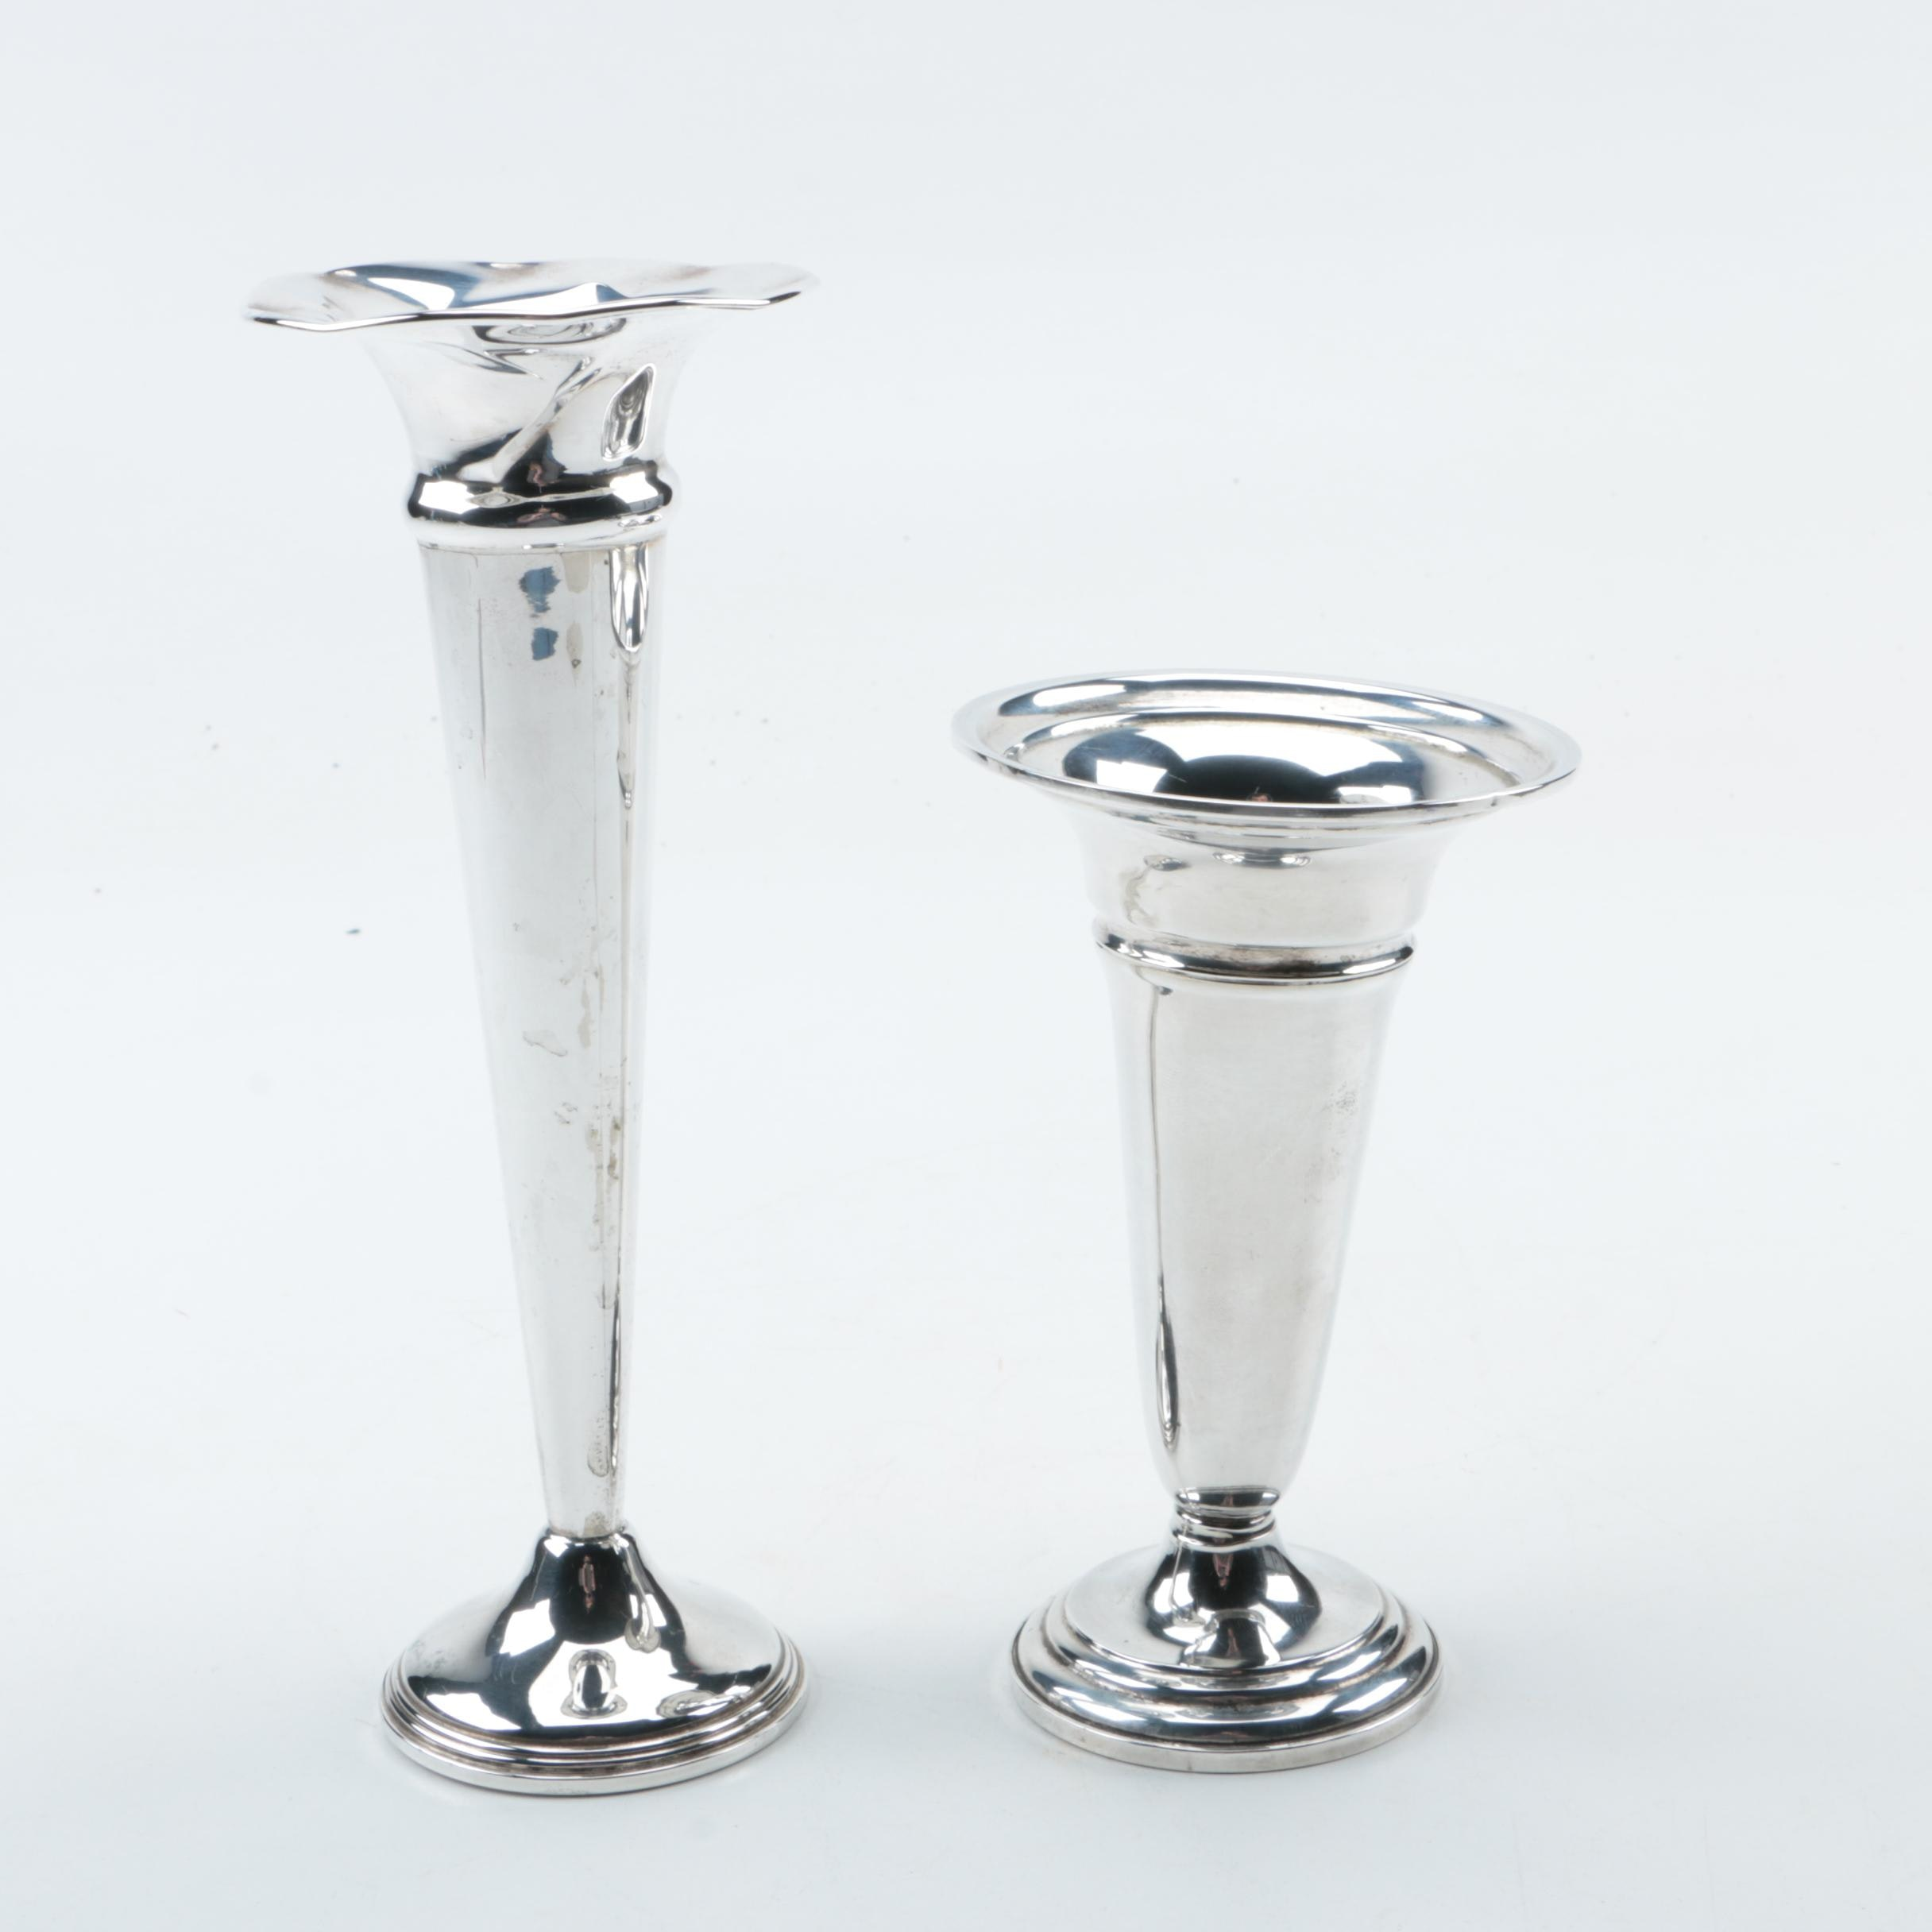 Elmore Silver Co and Empire Silver Co Weighted Sterling Silver Bud Vases